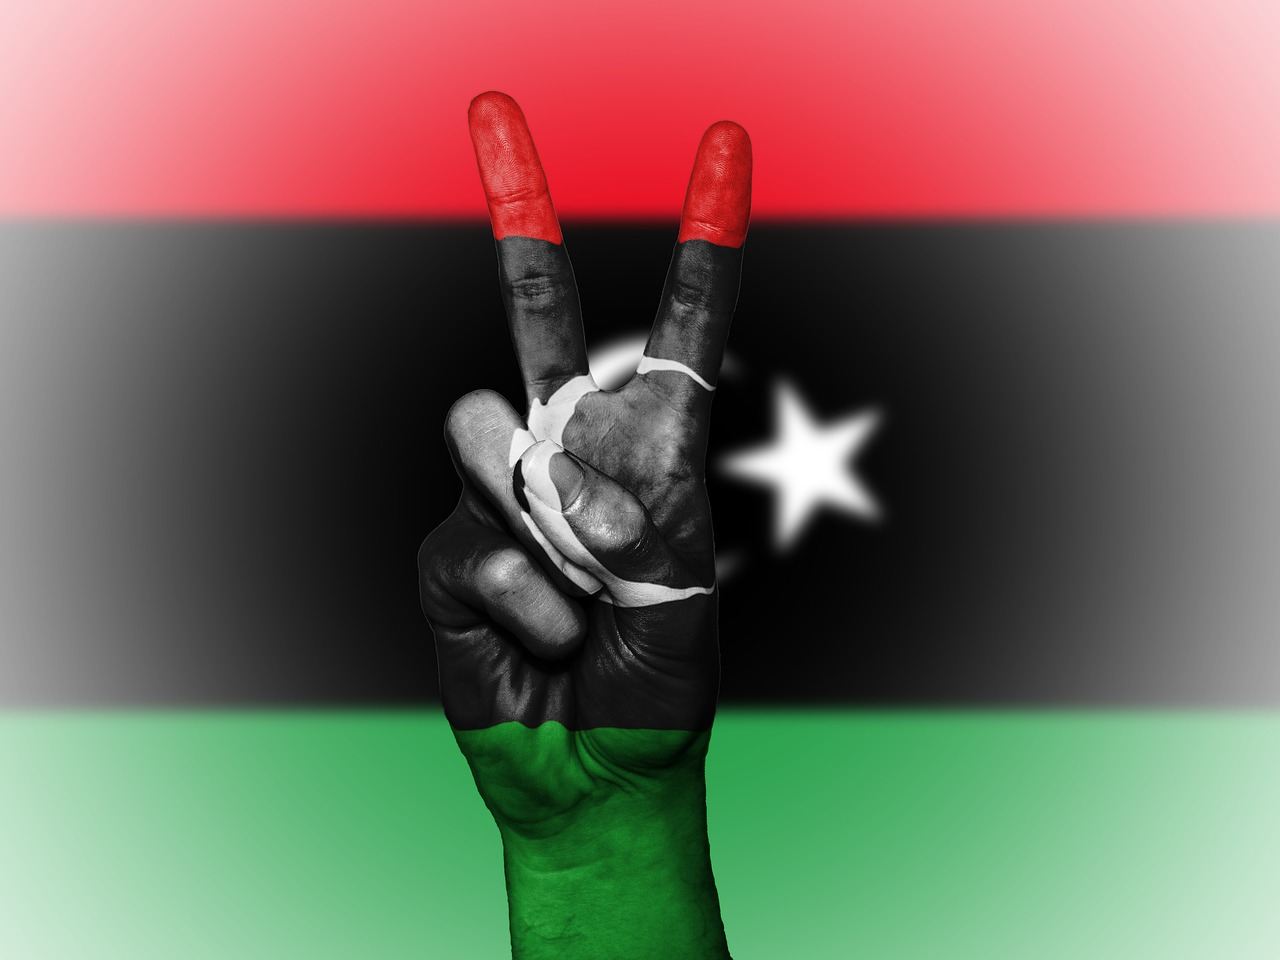 libya,peace,hand,nation,background,banner,colors,country,ensign,flag,icon,national,state,symbol,tourism,travel,free pictures, free photos, free images, royalty free, free illustrations, public domain